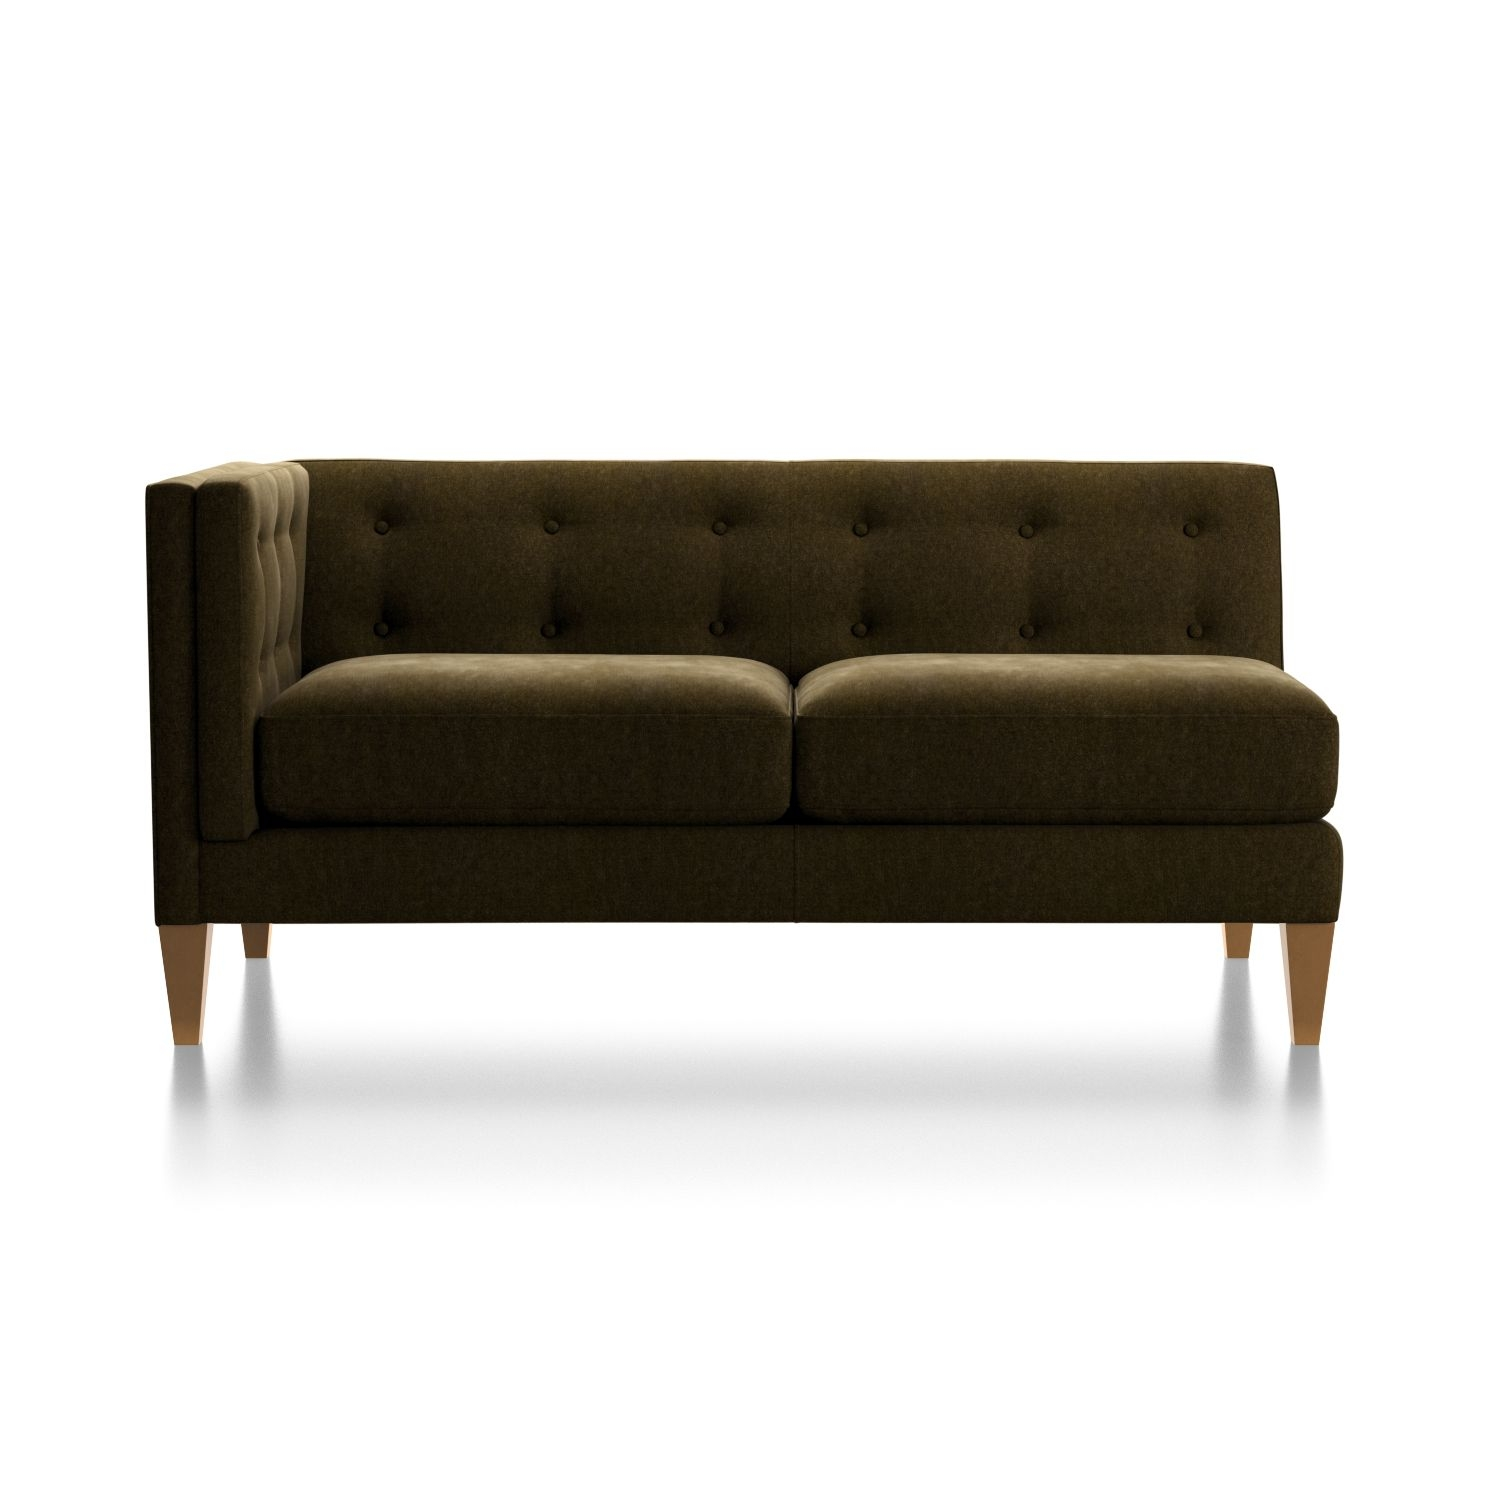 Aidan Velvet Left Arm Tufted Loveseat + Reviews | Crate And Barrel For Aidan 4 Piece Sectionals (Image 6 of 25)